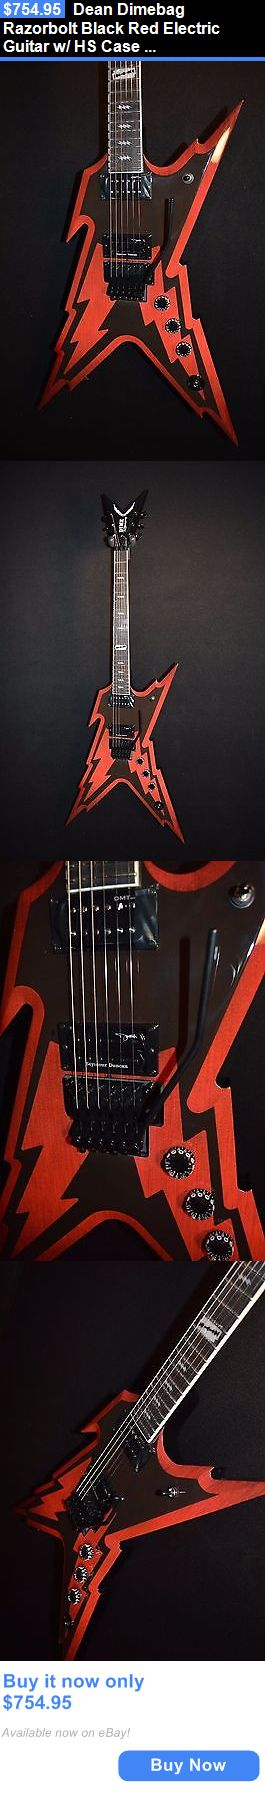 musical instruments: Dean Dimebag Razorbolt Black Red Electric Guitar W/ Hs Case - Free Shipping! BUY IT NOW ONLY: $754.95